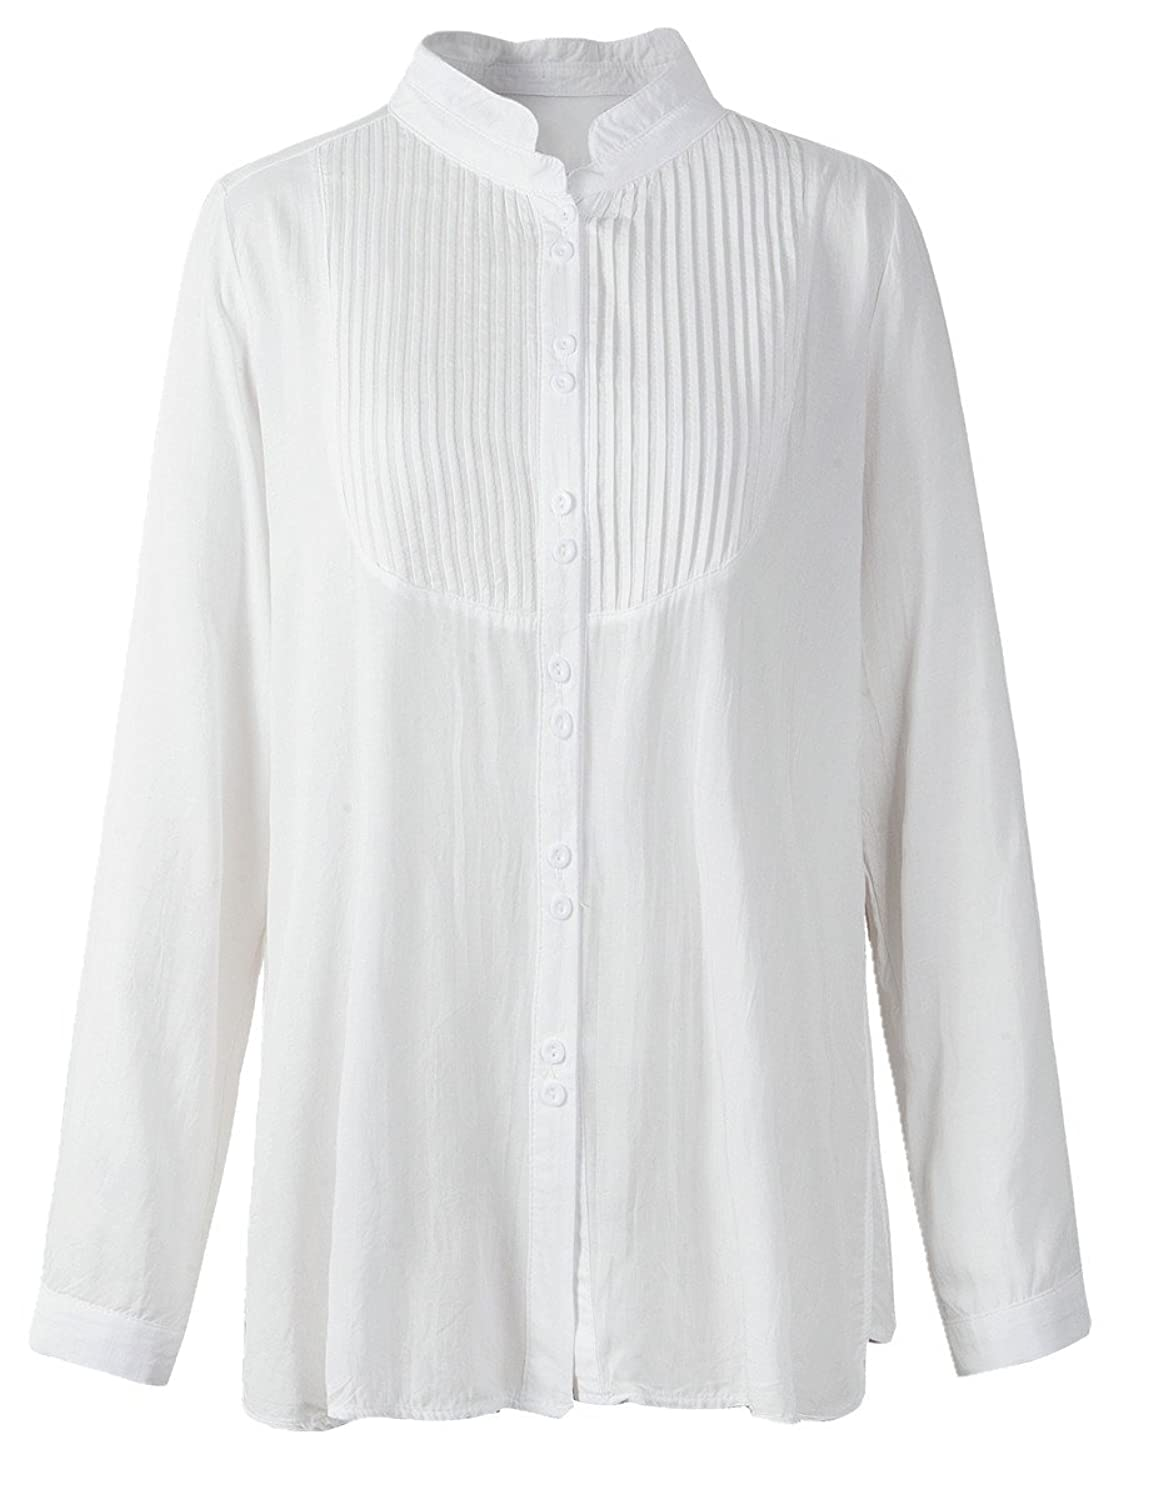 Blouse Pleated Button Down Shirt Long sleeves Top $14.99 AT vintagedancer.com